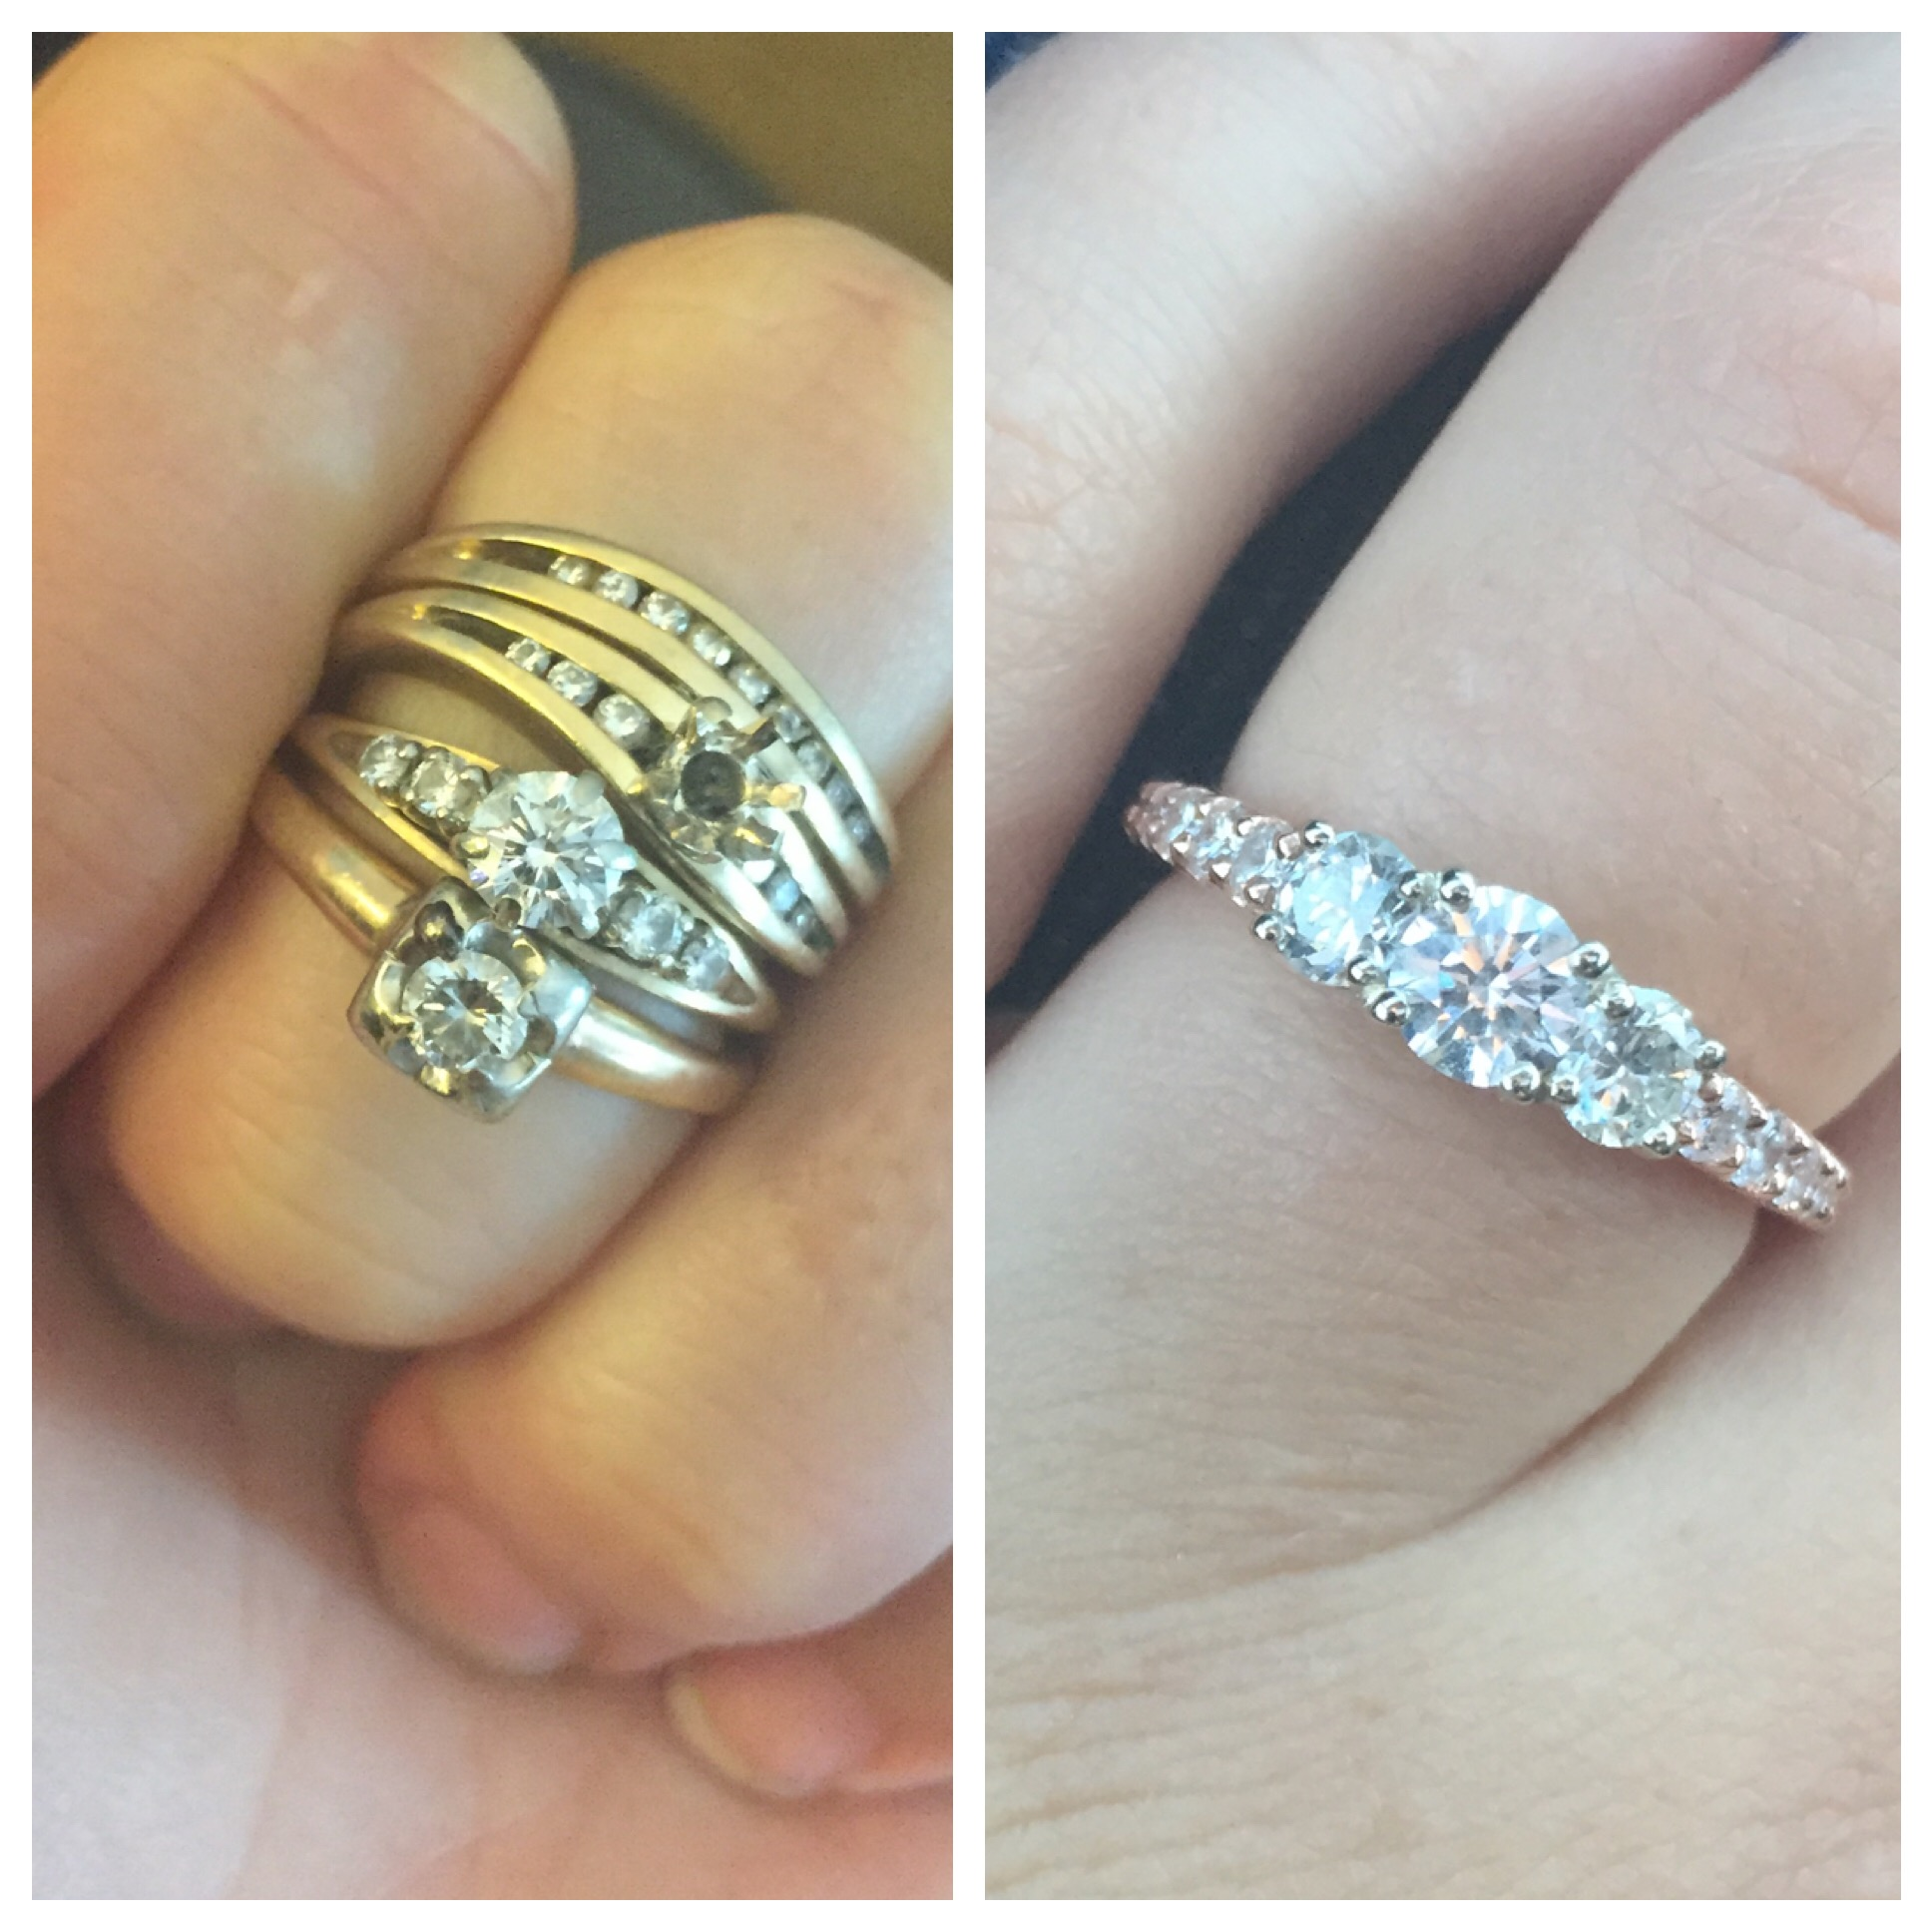 Engagement ring made from reset stones before & after photos (Source: Weddingbee)